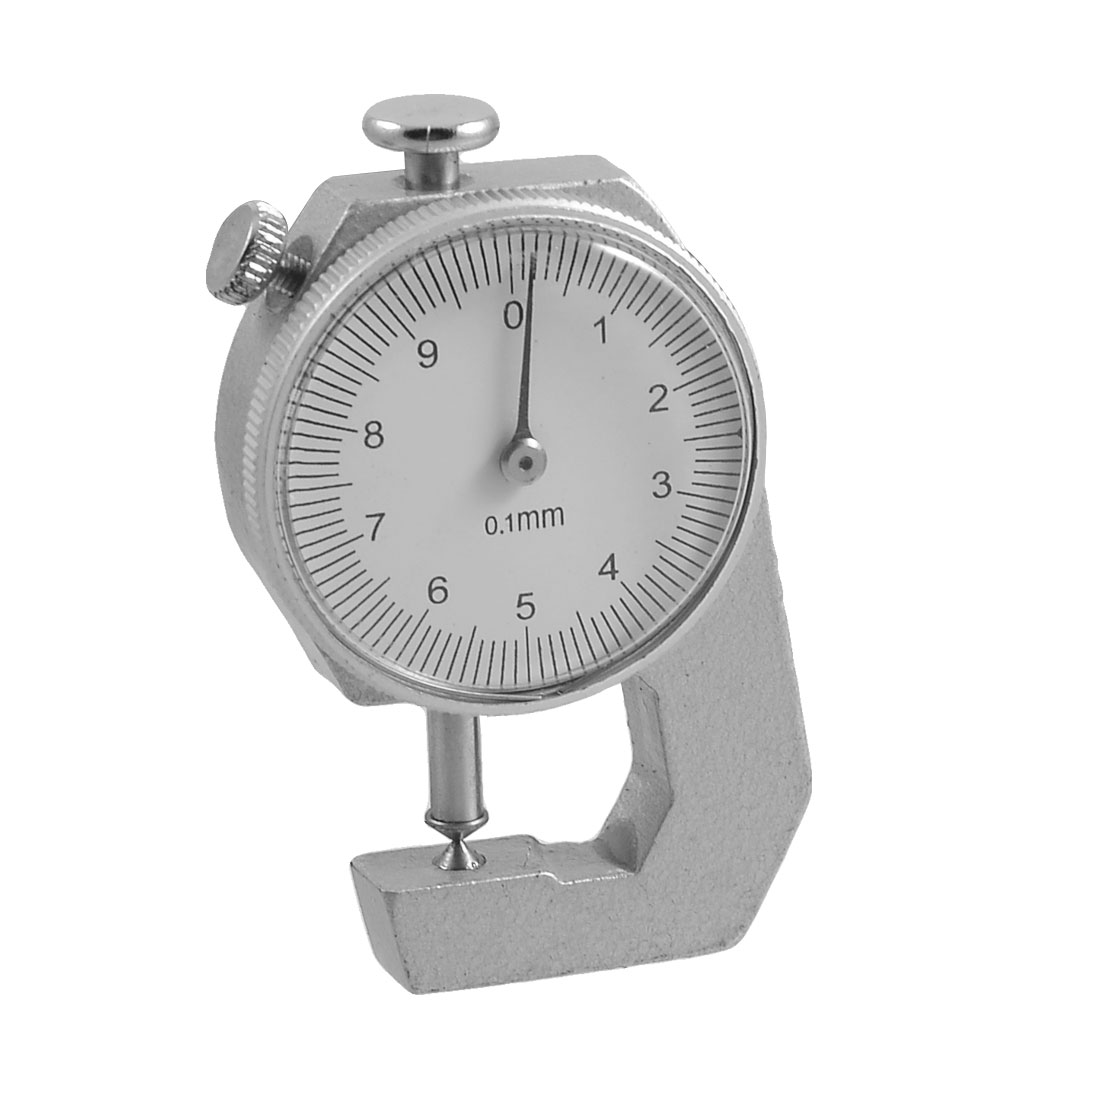 Round Dial 0-10mm Pocket Thickness Gauge Gage Silver Tone